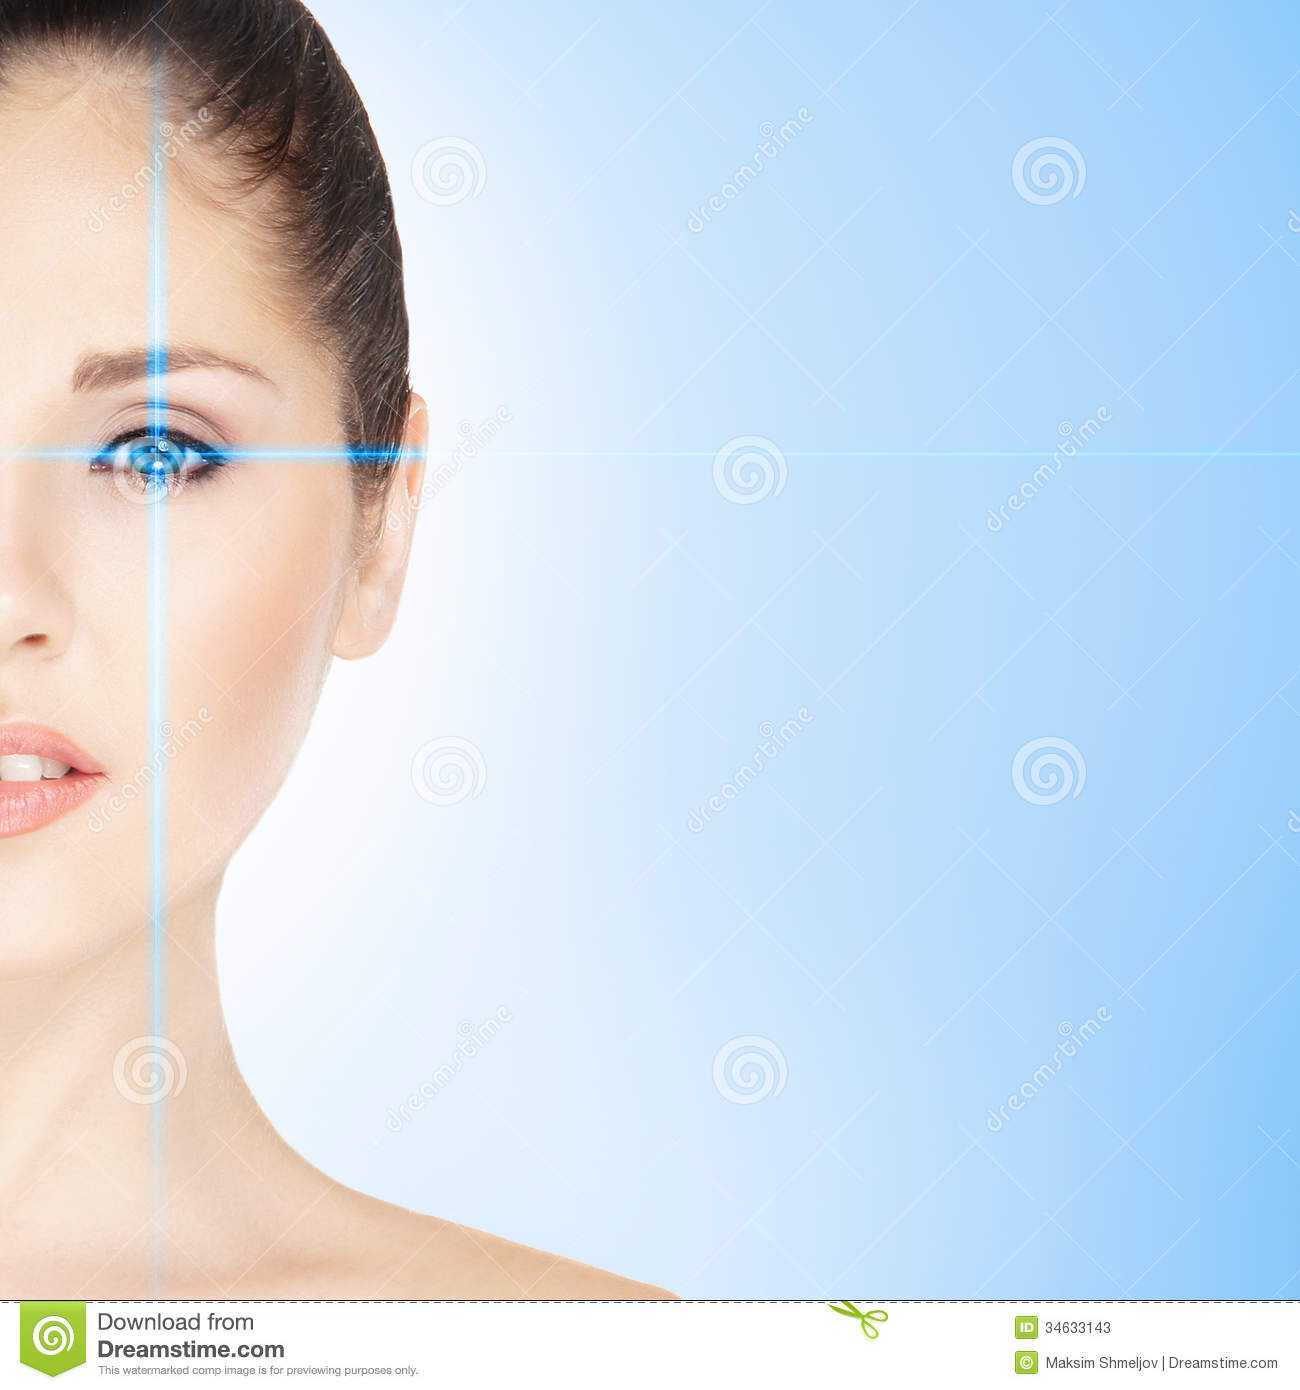 Portrait Of A Woman On An Eye Surgery Stock Image